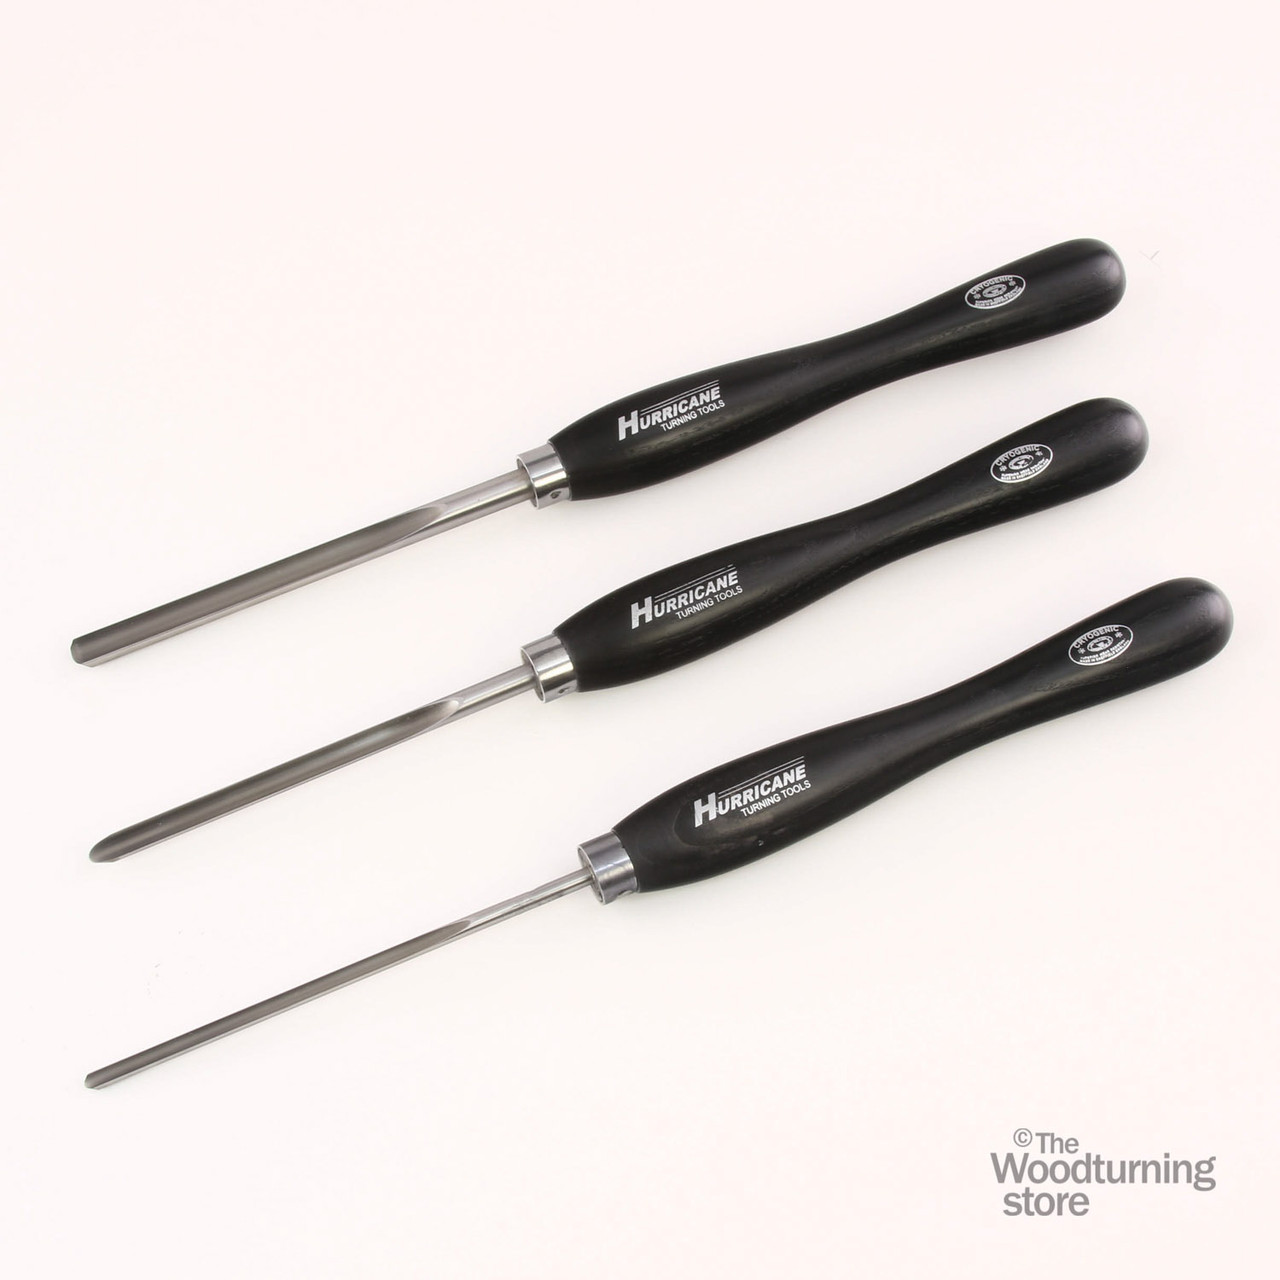 "Hurricane M2 Cryo, 3 Piece Spindle Gouge Pro Tool Set (1/2"", 3/8"" and 1/4"" Flute)"